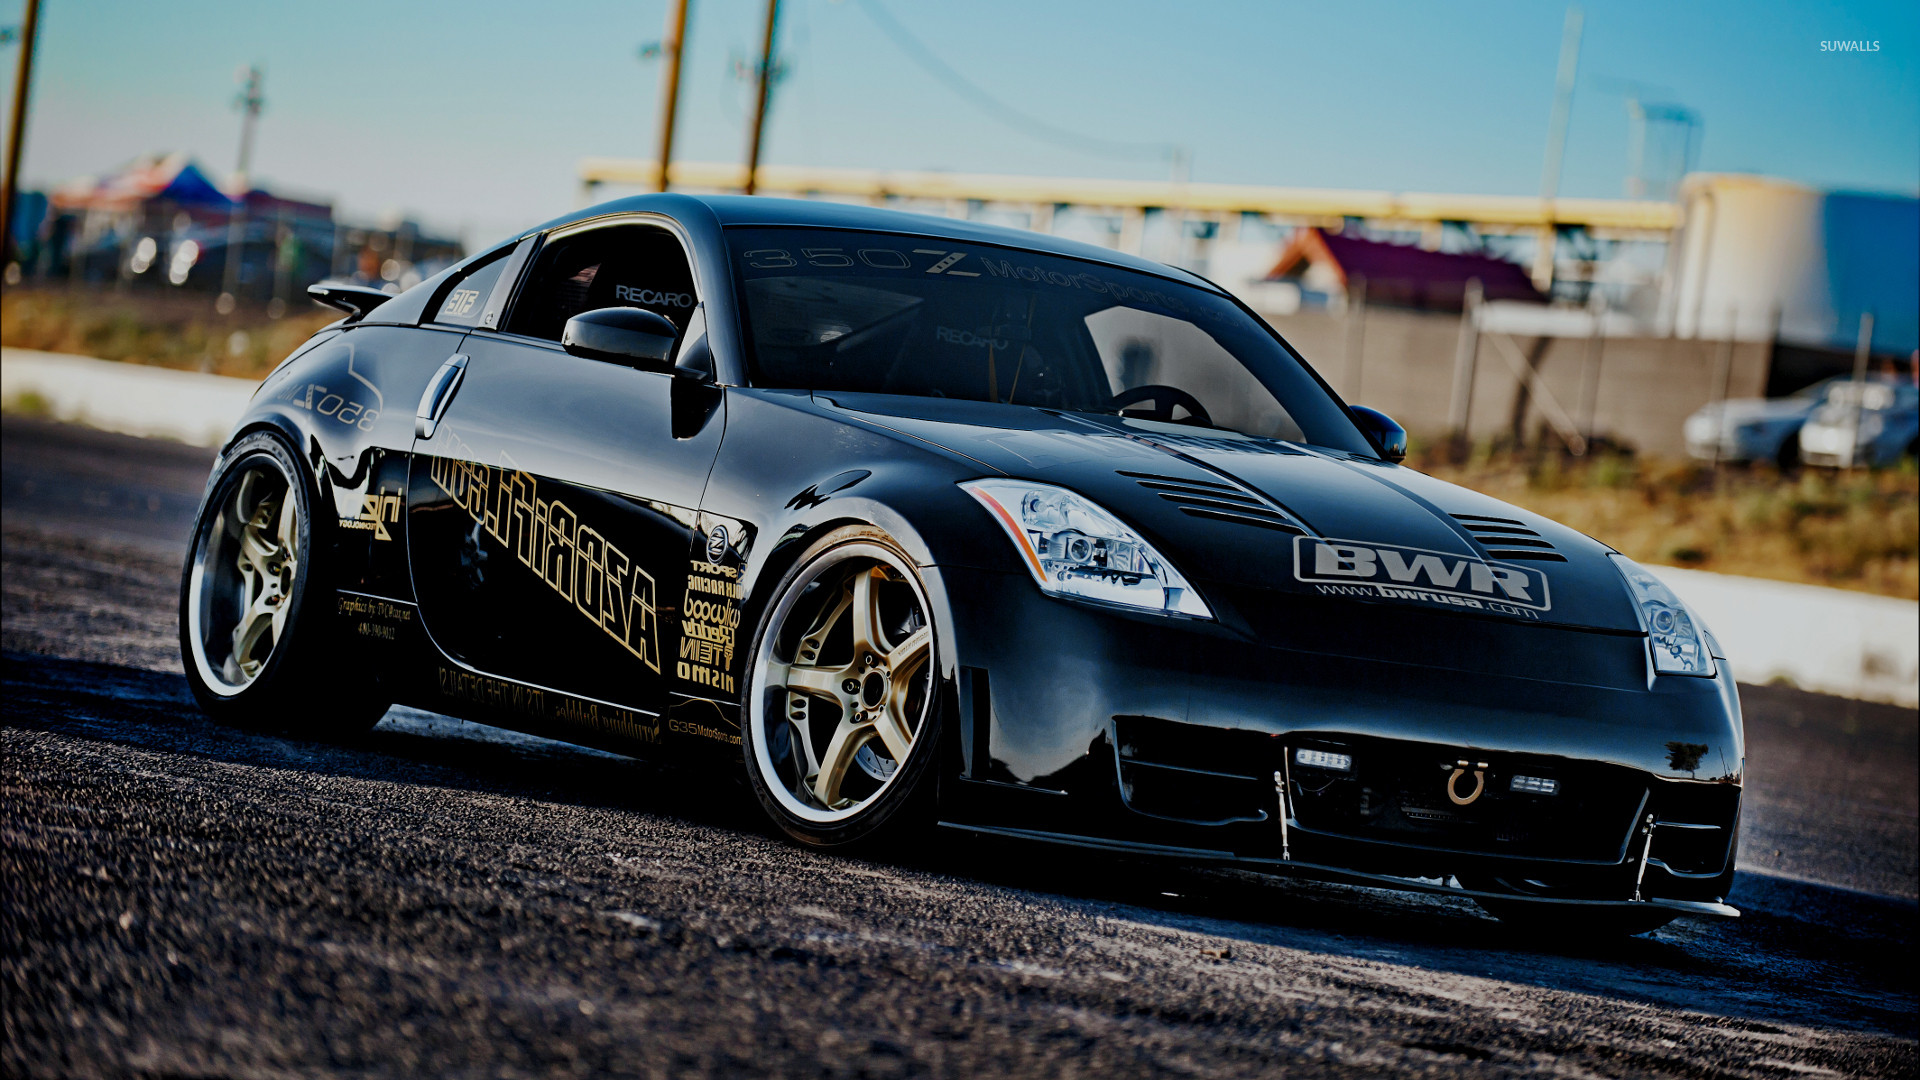 Front side view of a Nissan 350Z wallpaper